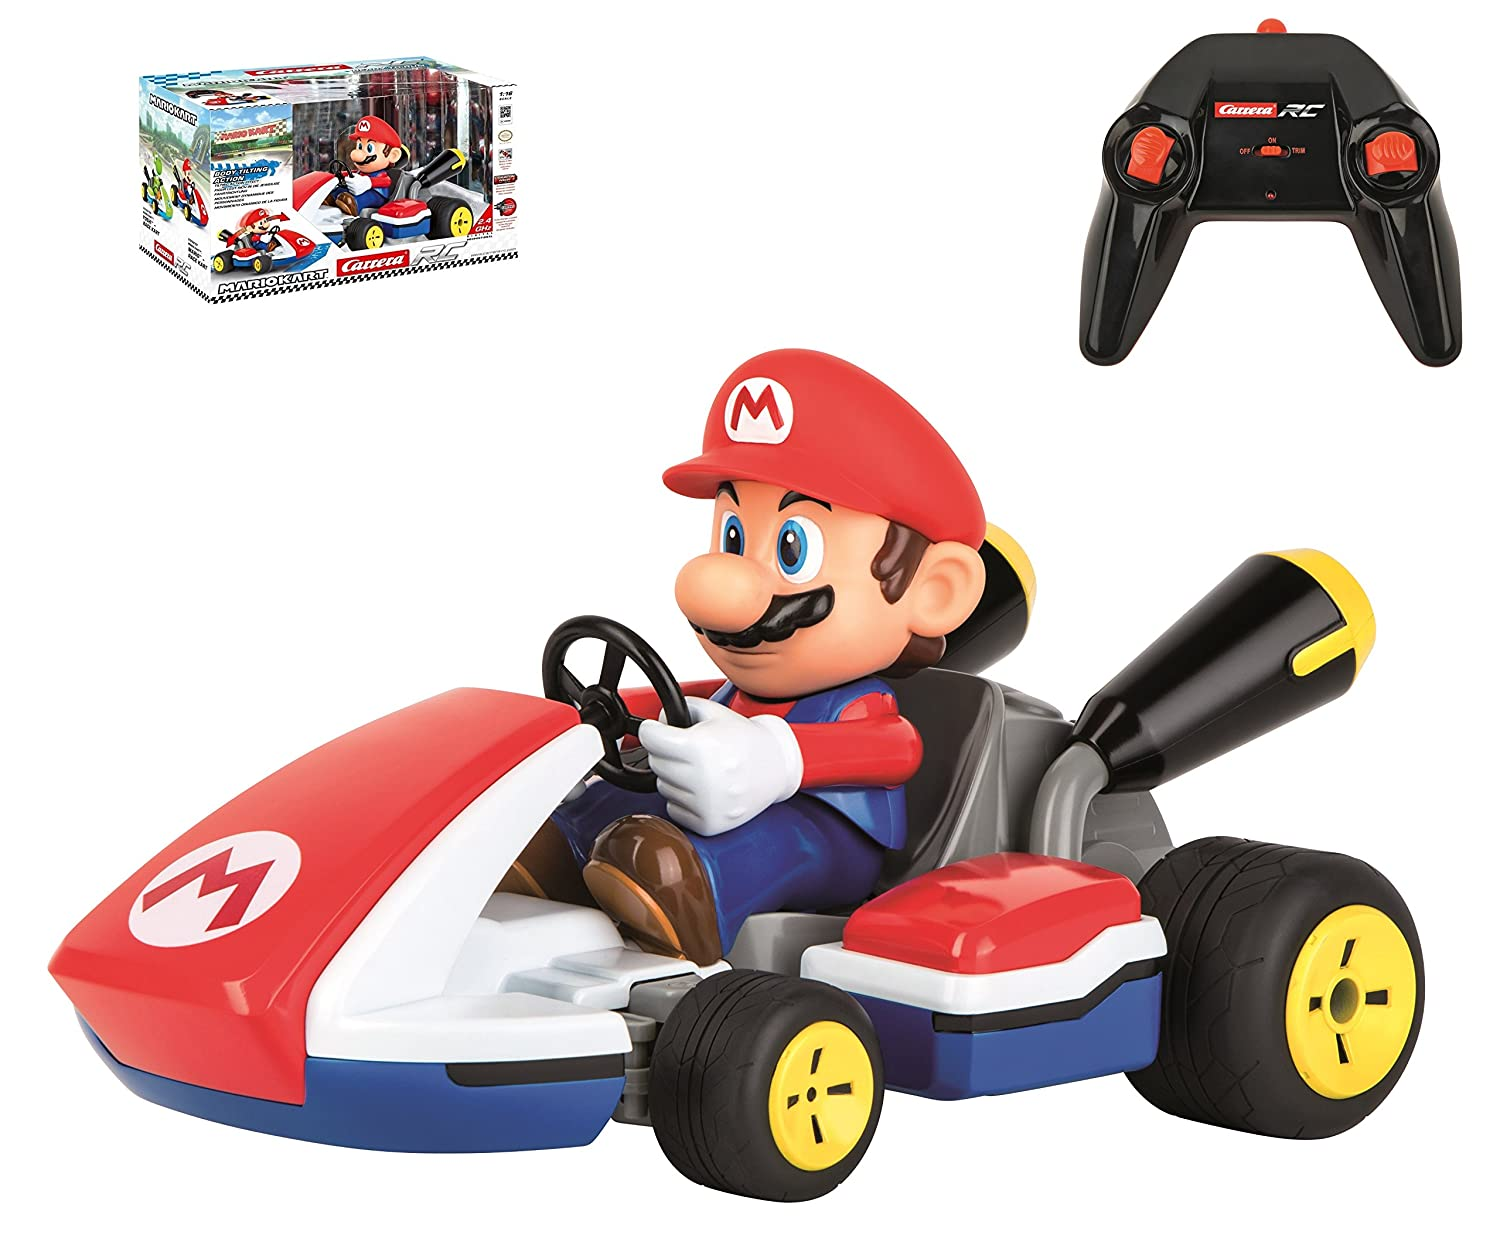 CARRERA RC 370162107 Mario Race Kart Toy with Sound